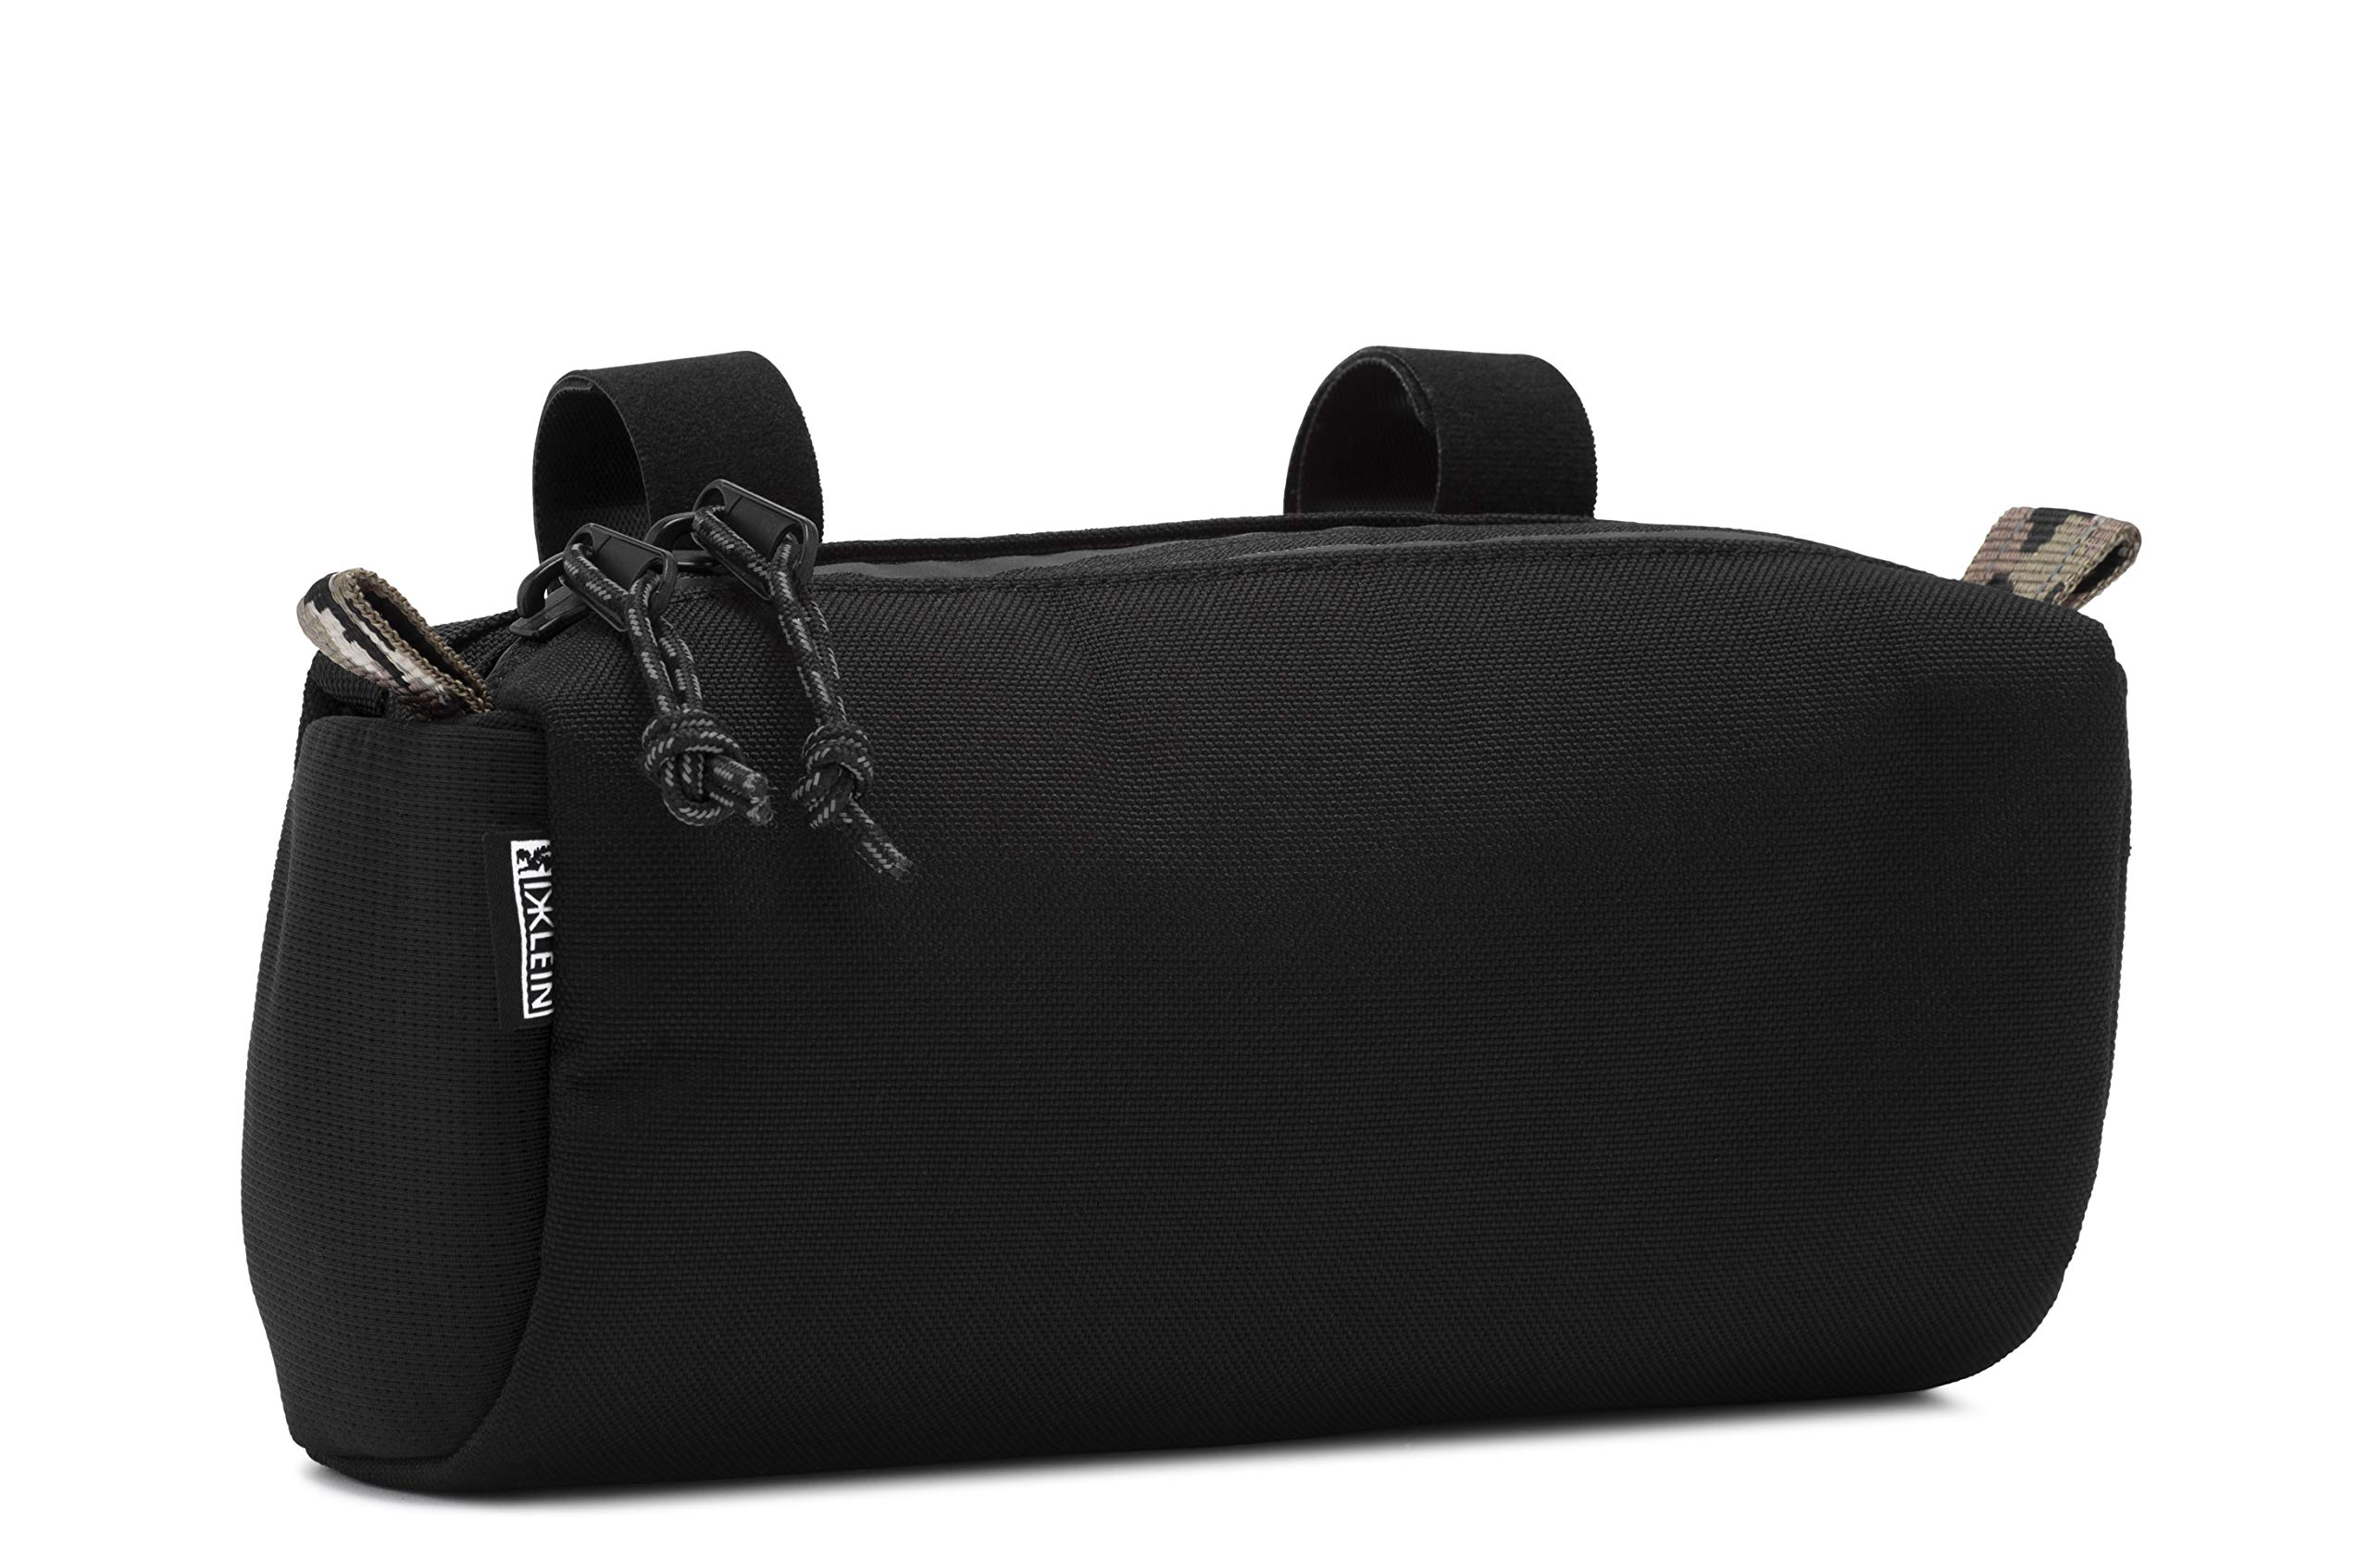 Chrome Industries Handlebar Bag Black and Dklein by Chrome